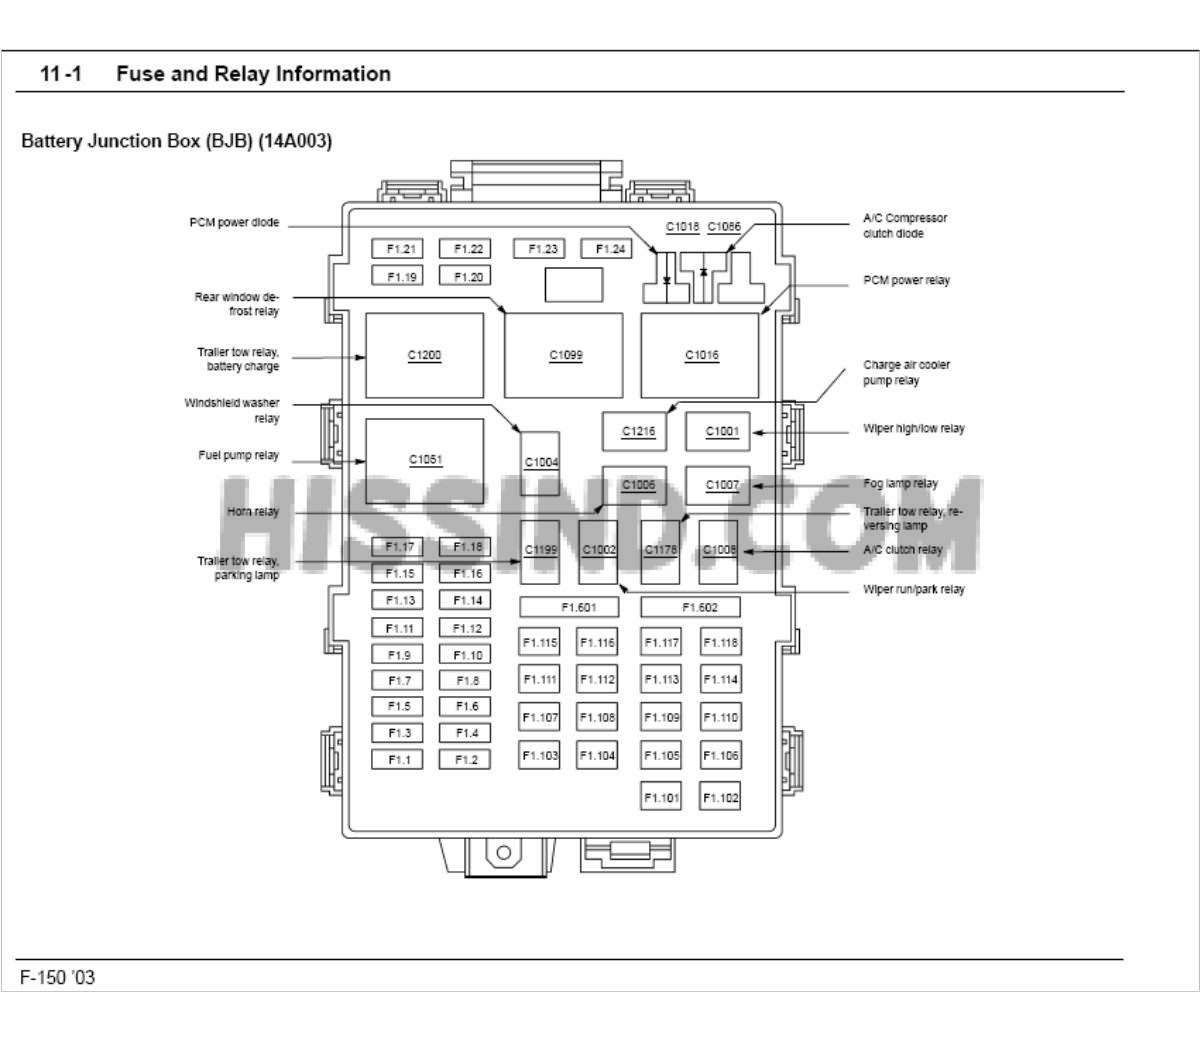 2000 Ford F150 Fuse Box Diagram Engine Bay